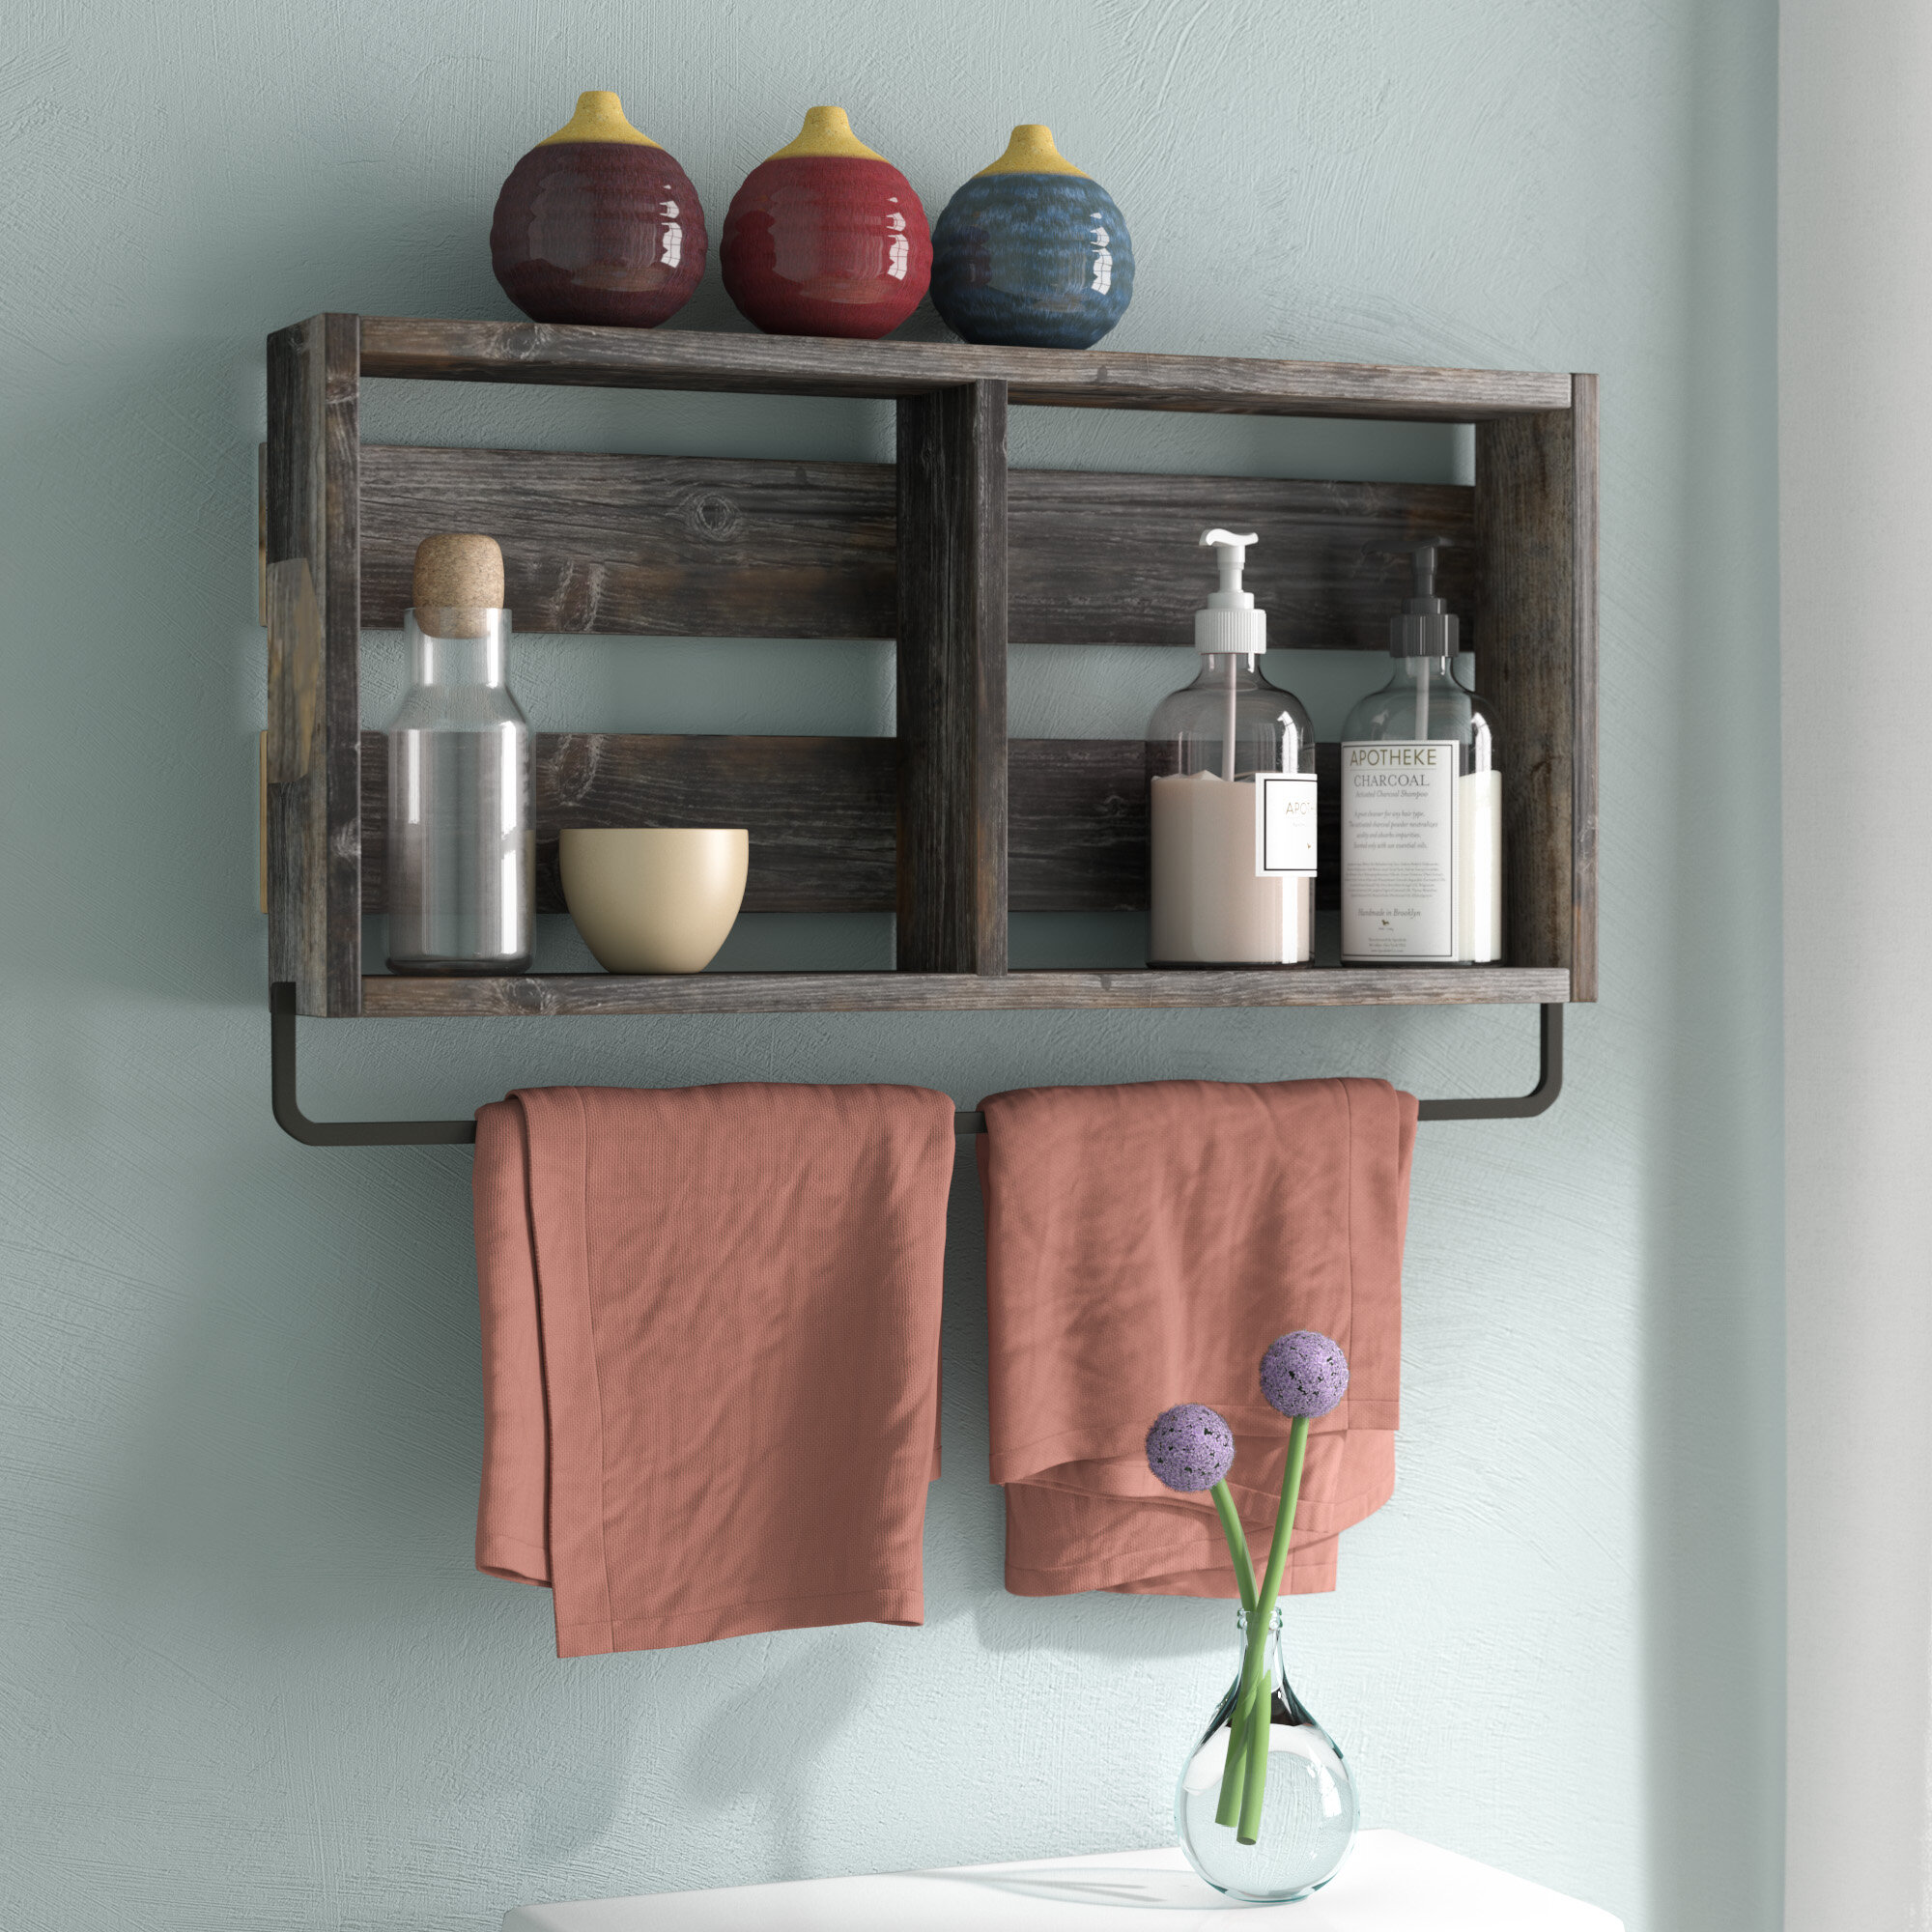 b architonic living product com oak ferm shelves en from by shelf smoked